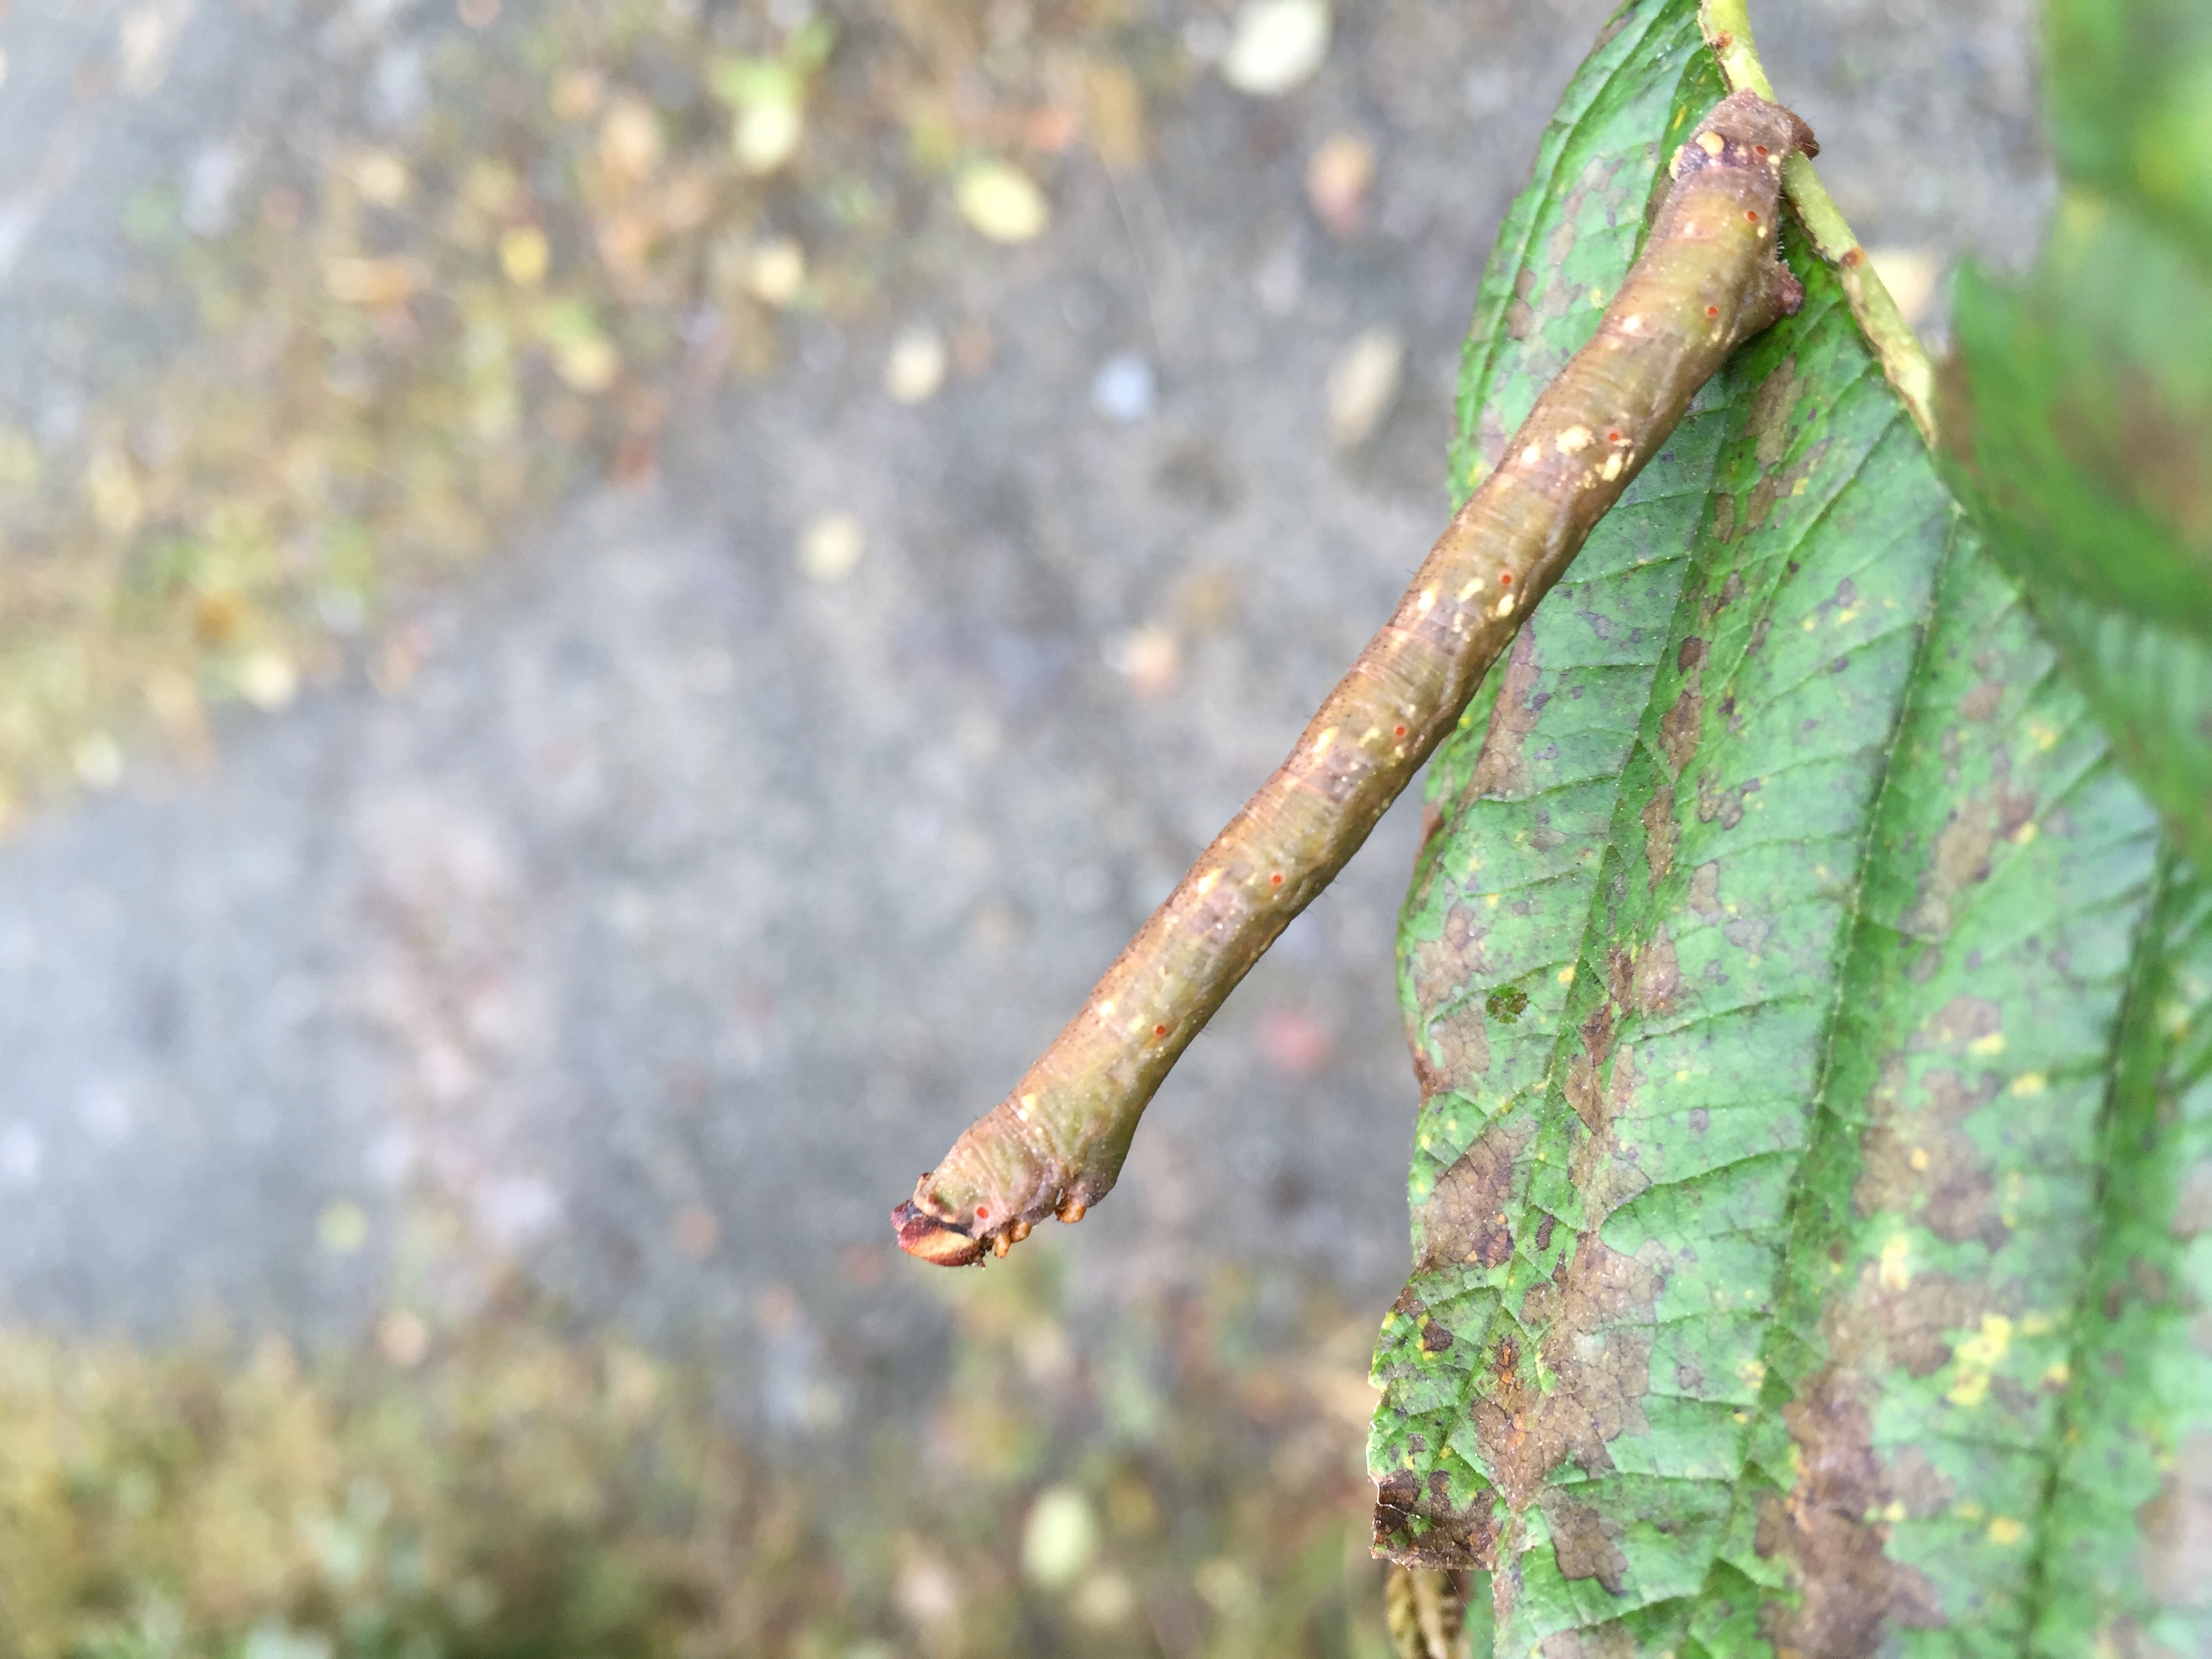 Caterpillars of the pepper moth mimic alder branches so they can safely feed unnoticed